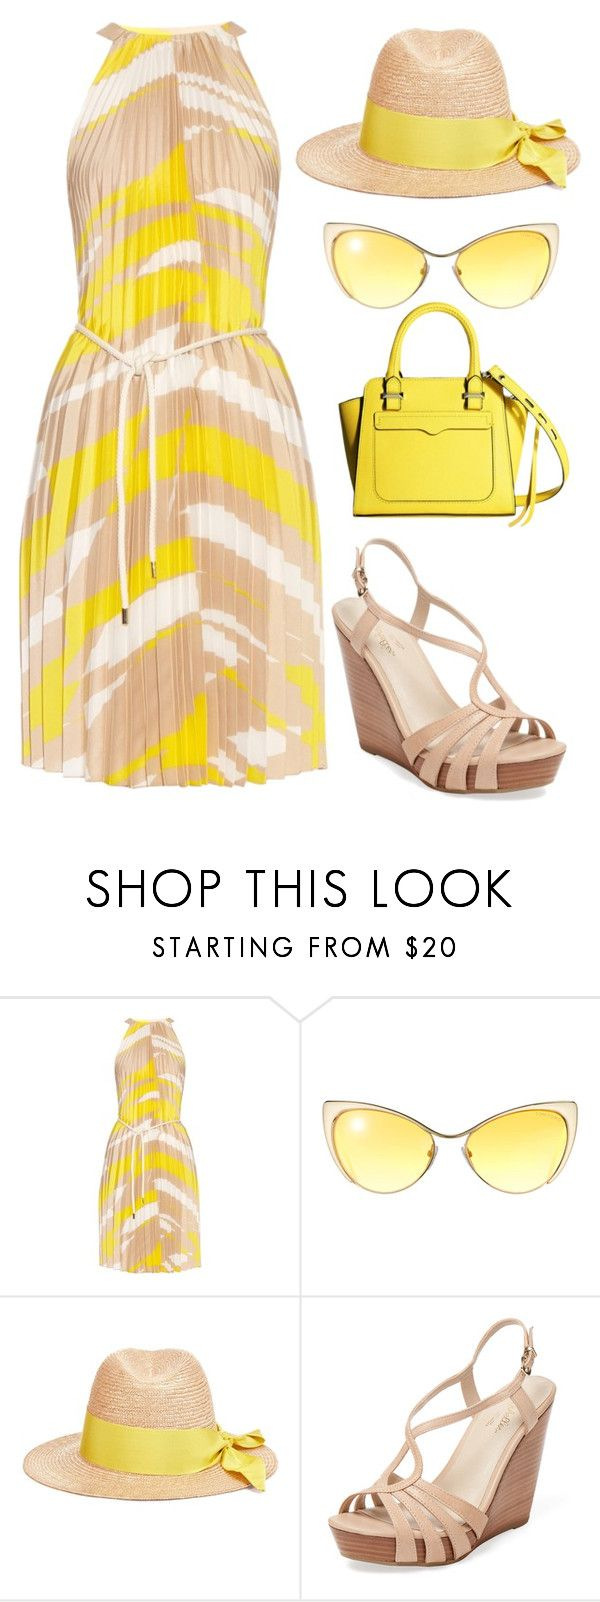 """""""pleats to meet you"""" by catie-rose-ryder ❤ liked on Polyvore featuring MaxMara, Tom Ford, Federica Moretti, Seychelles, Rebecca Minkoff and beachtotes"""